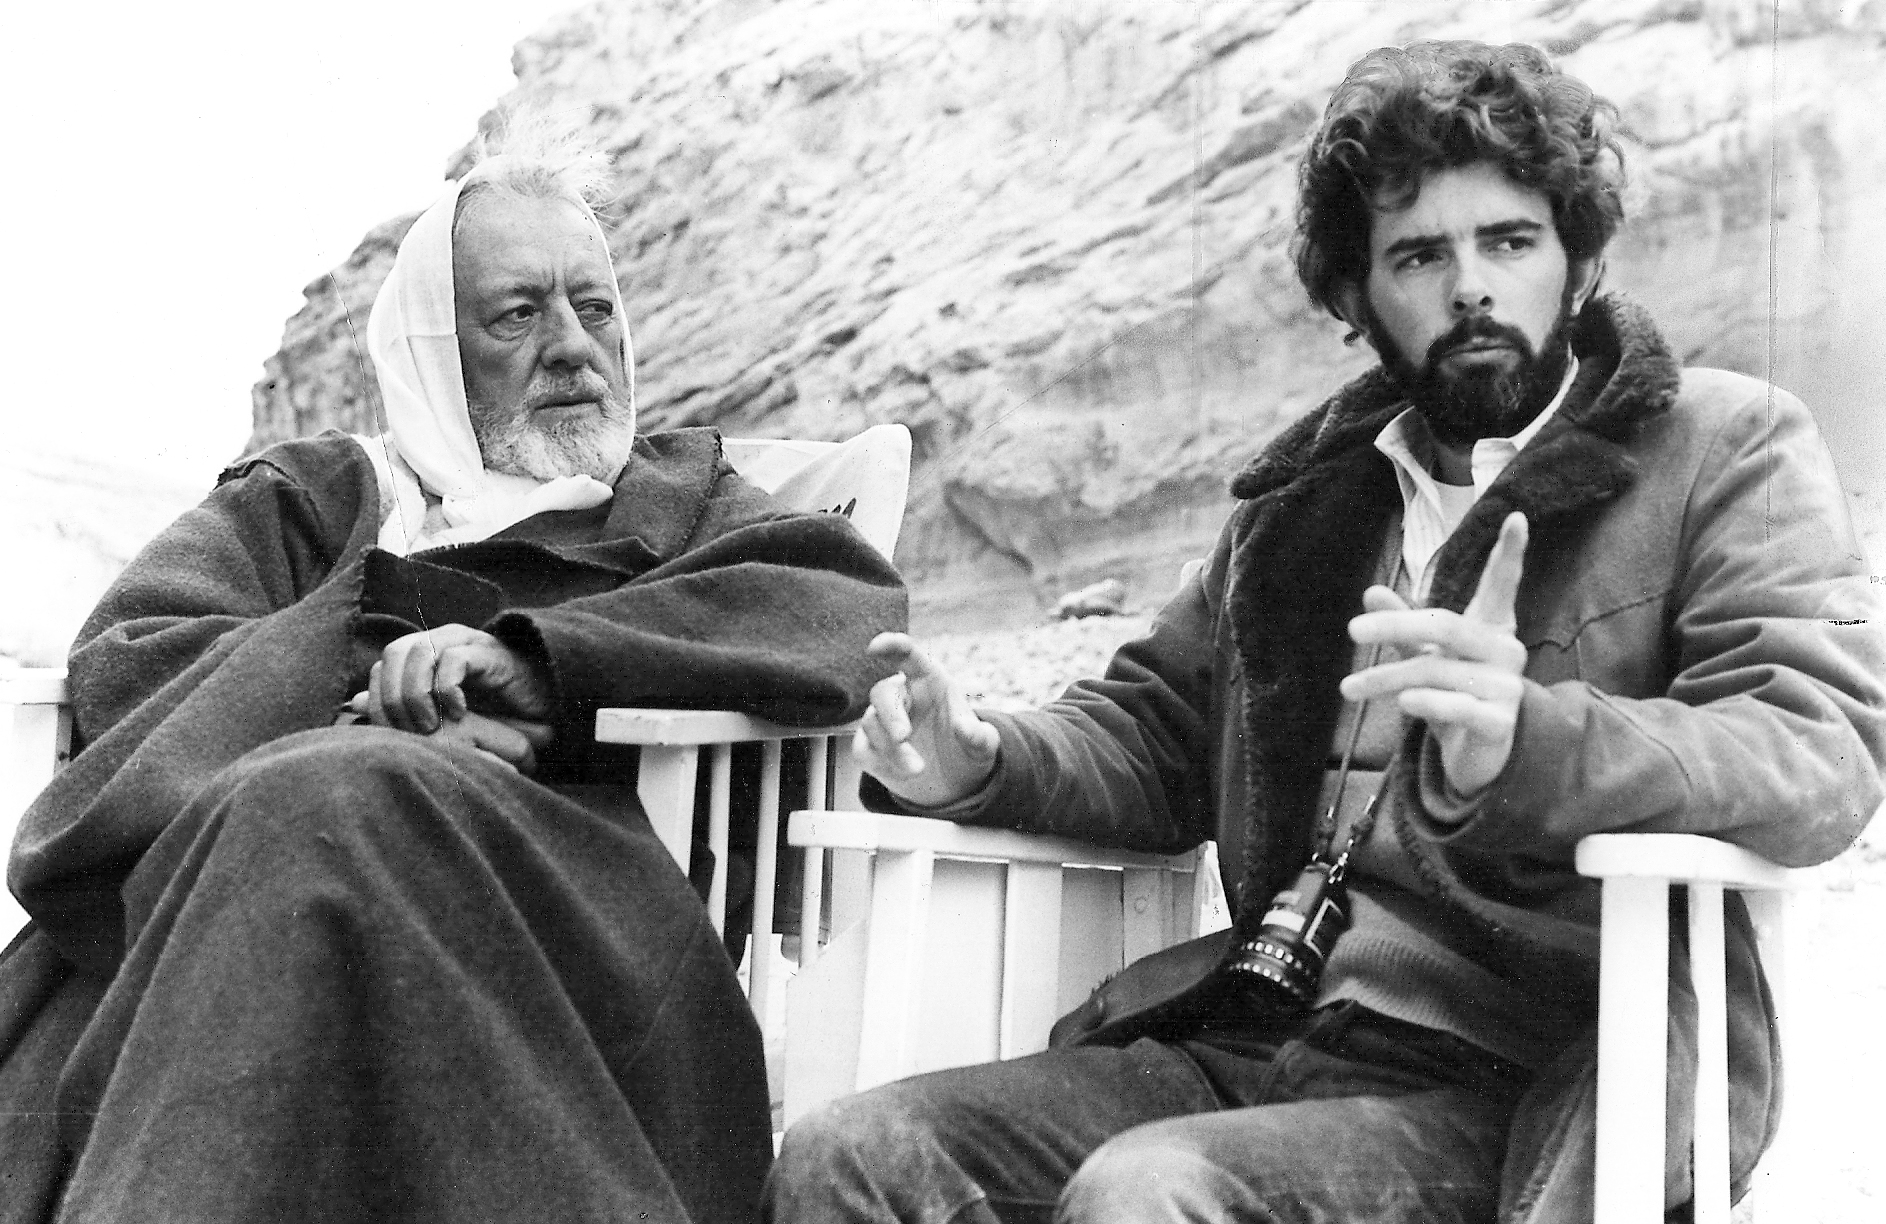 George Lucas Tries To Explain The Real Meaning Of The Star